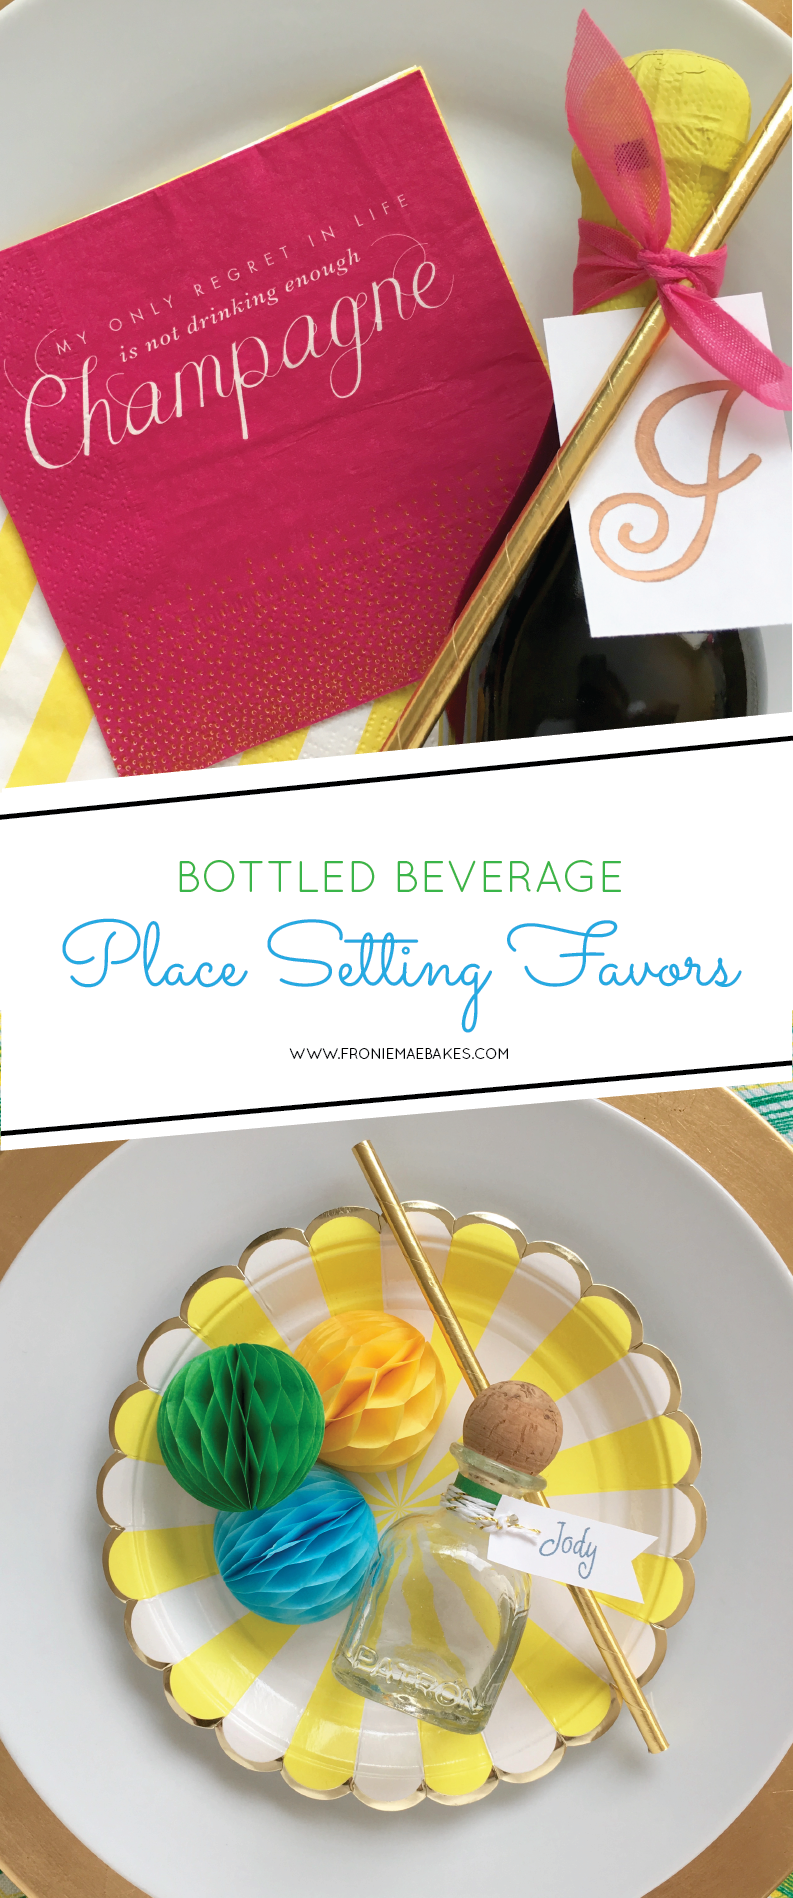 Make cute beverage place card favors for your next party using some of these ideas found on www.FronieMaeBakes.com